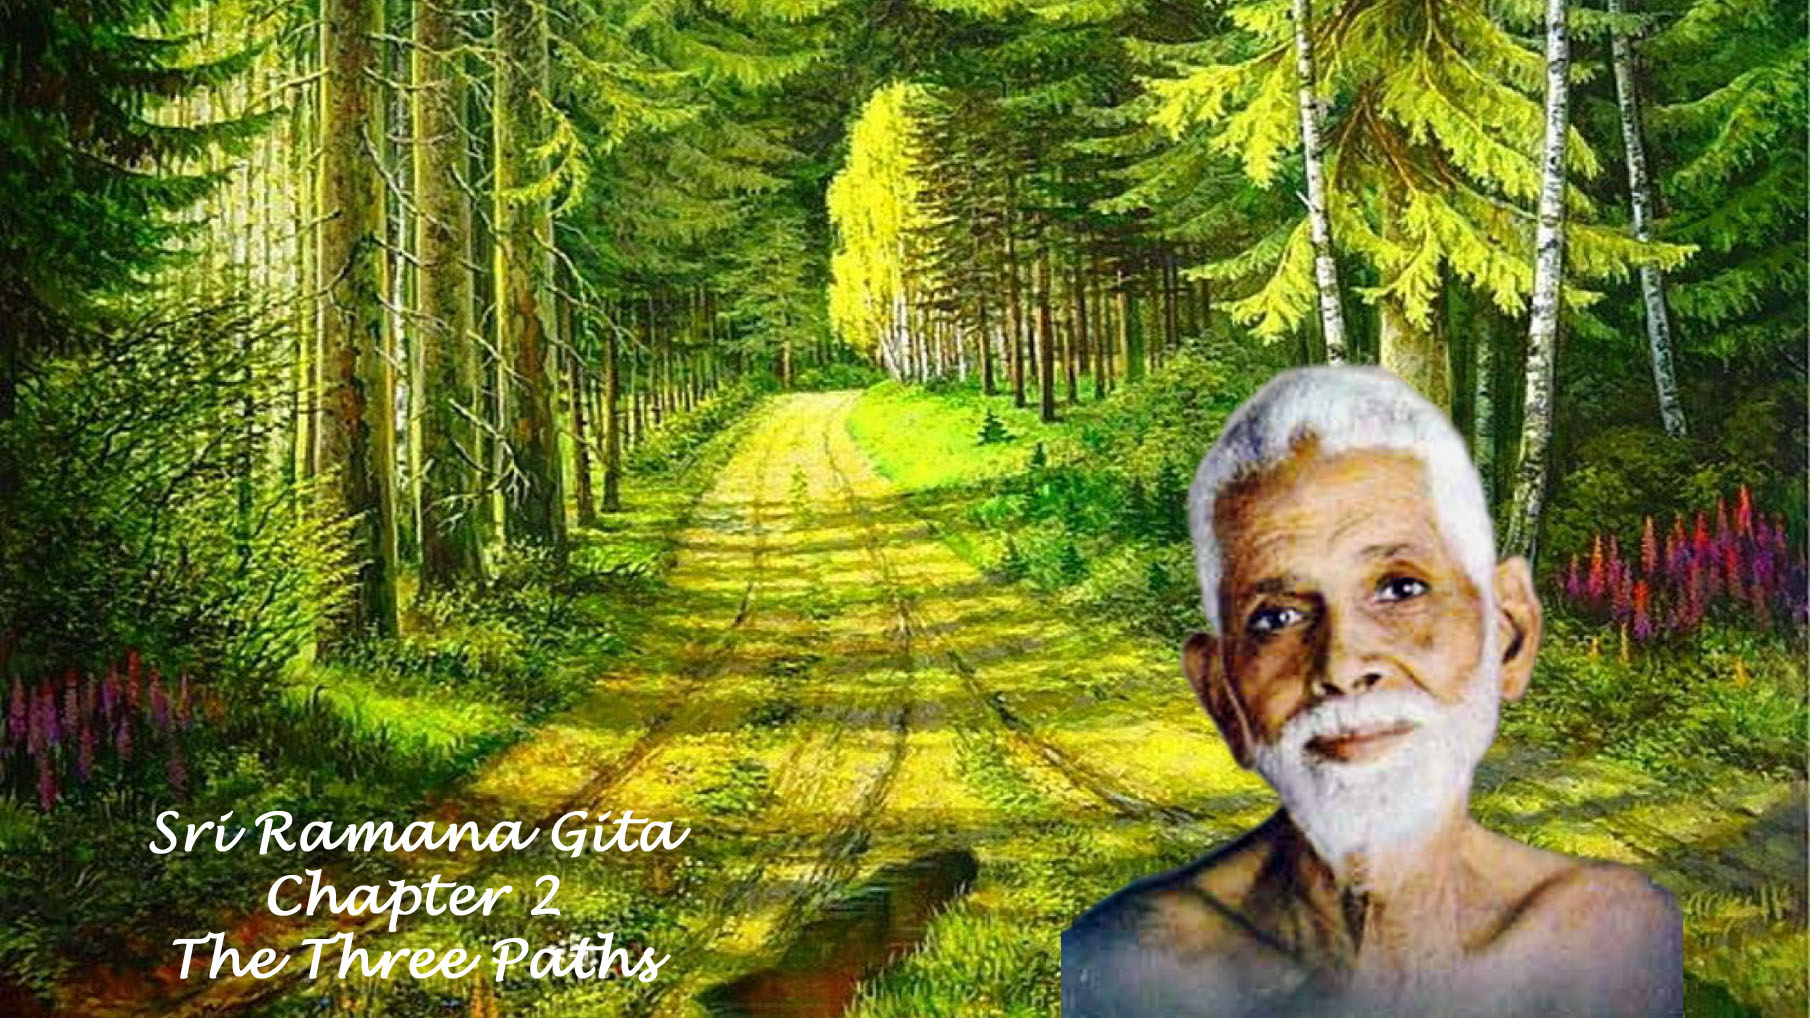 Sri Ramana Gita - Chapter 2 - The three paths